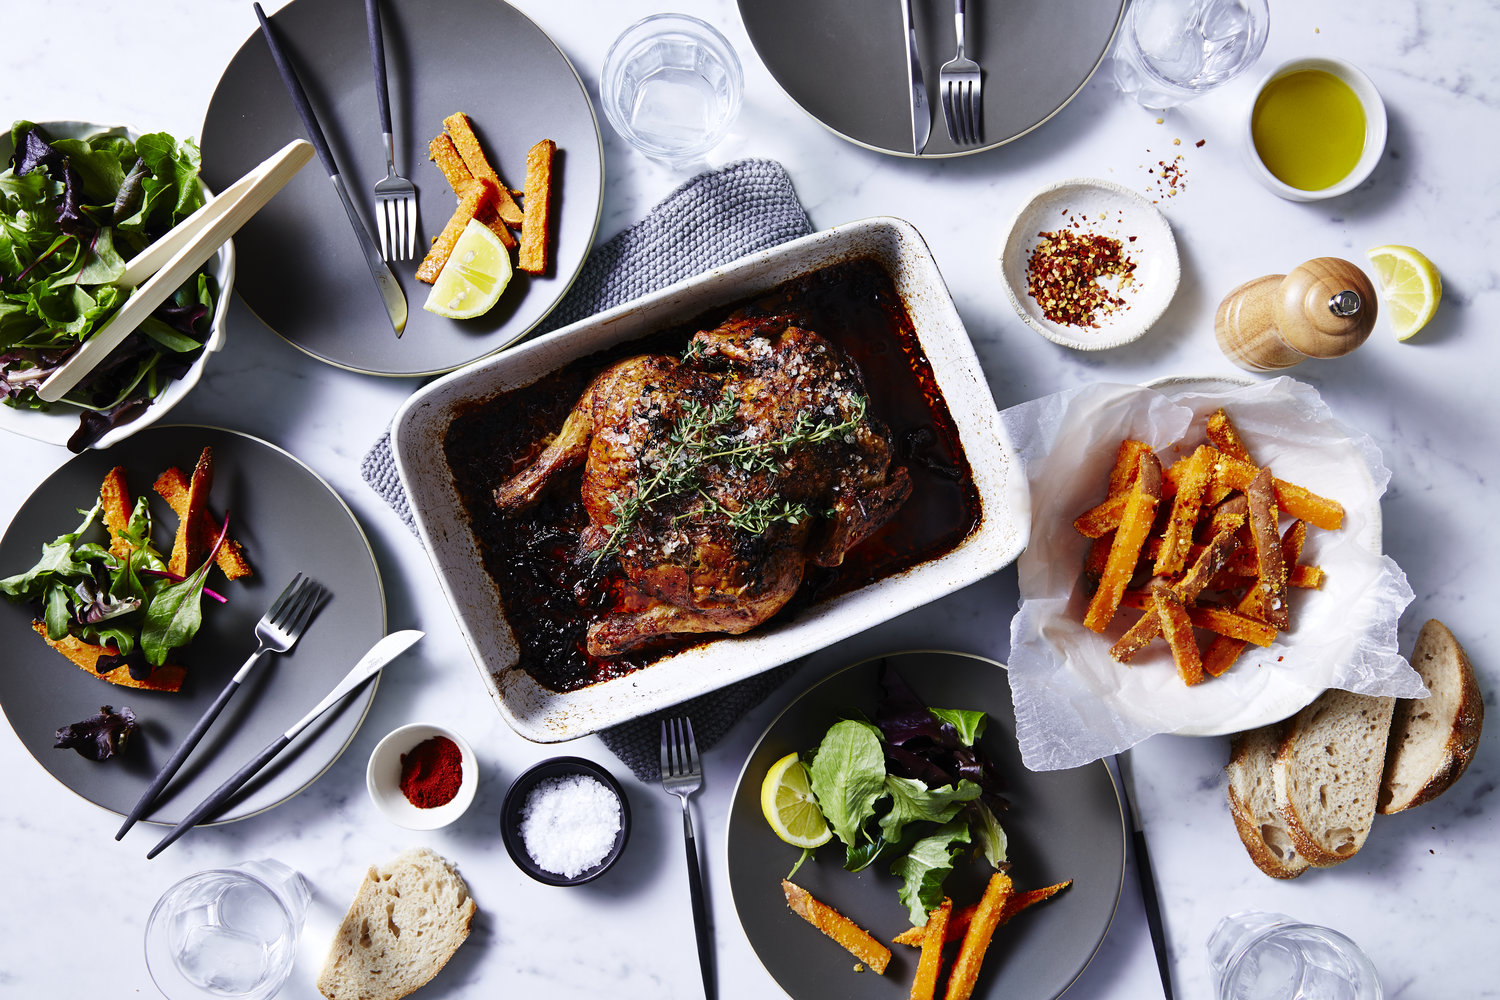 Peri-Peri Chicken with Polenta Sweet Potato Fries. I Quit Sugar. Photographer: Ella Martin. Stylist: Gemma Lush.